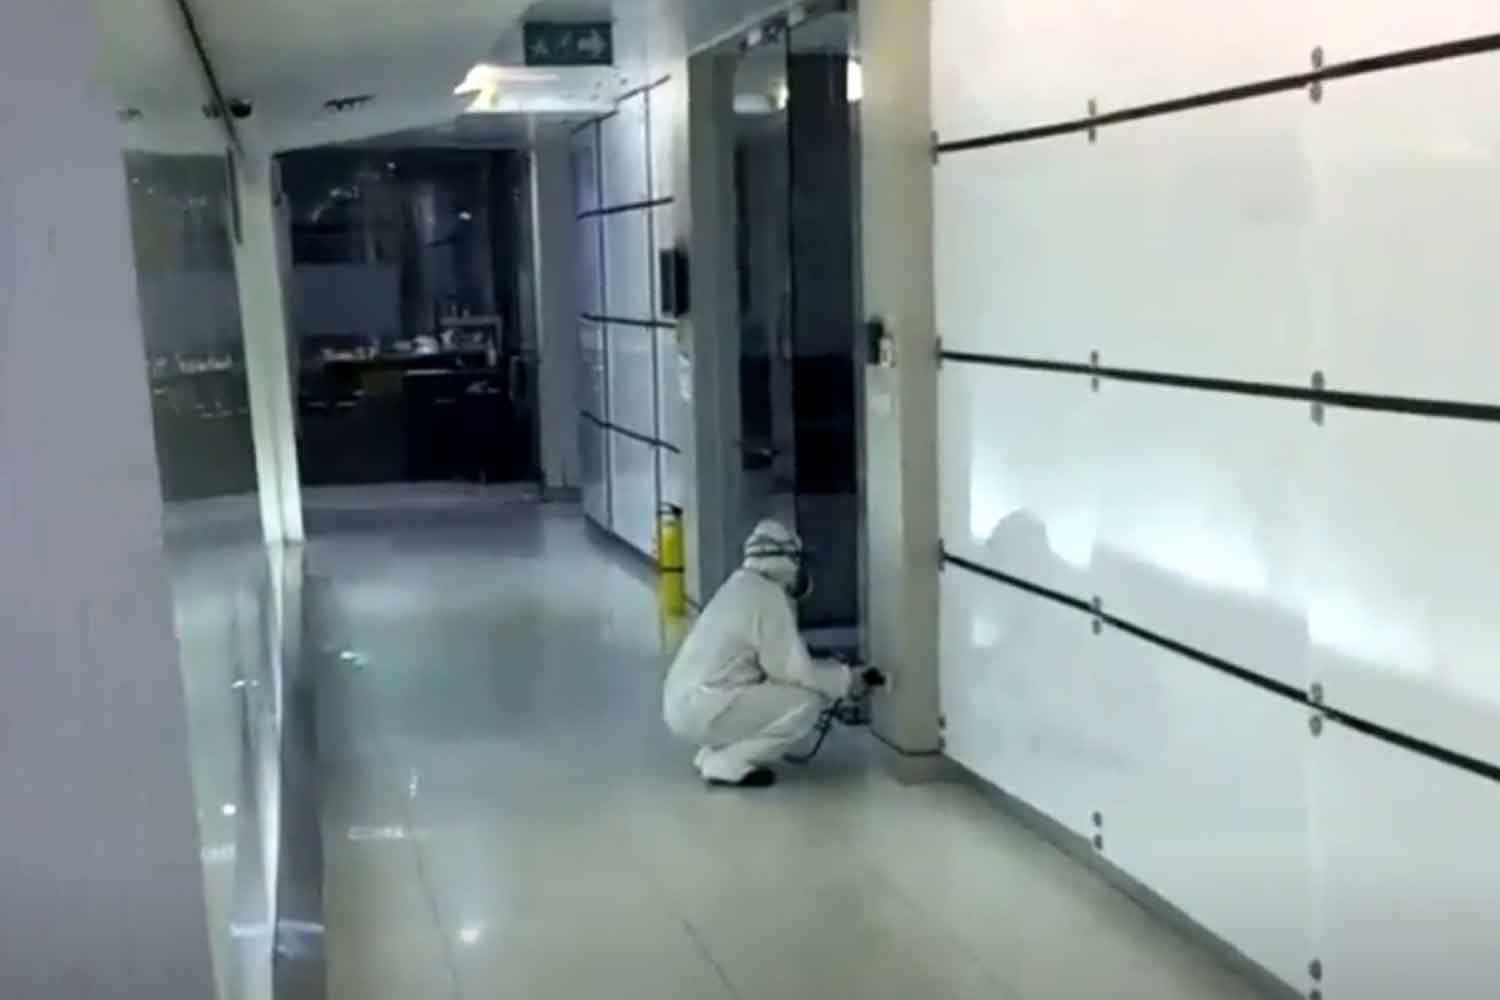 A disease control worker disinfects the Maleenon 2 Building of TV Channel 3 on Rama IV Road in Bangkok on Thursday night. (Screenshot from TV Channel 3)